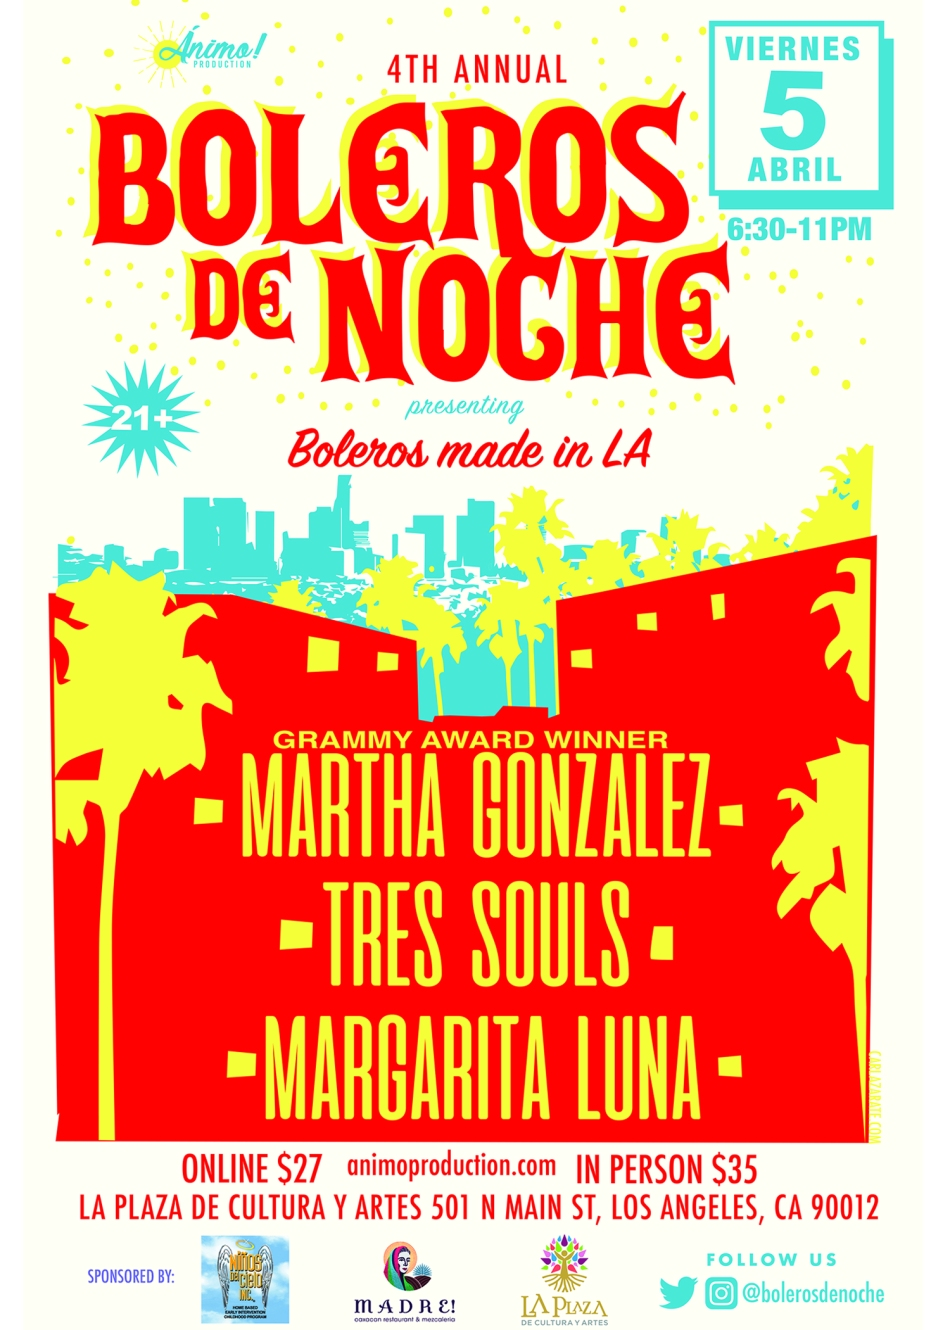 boleros de noche flyer April5th (2).jpg